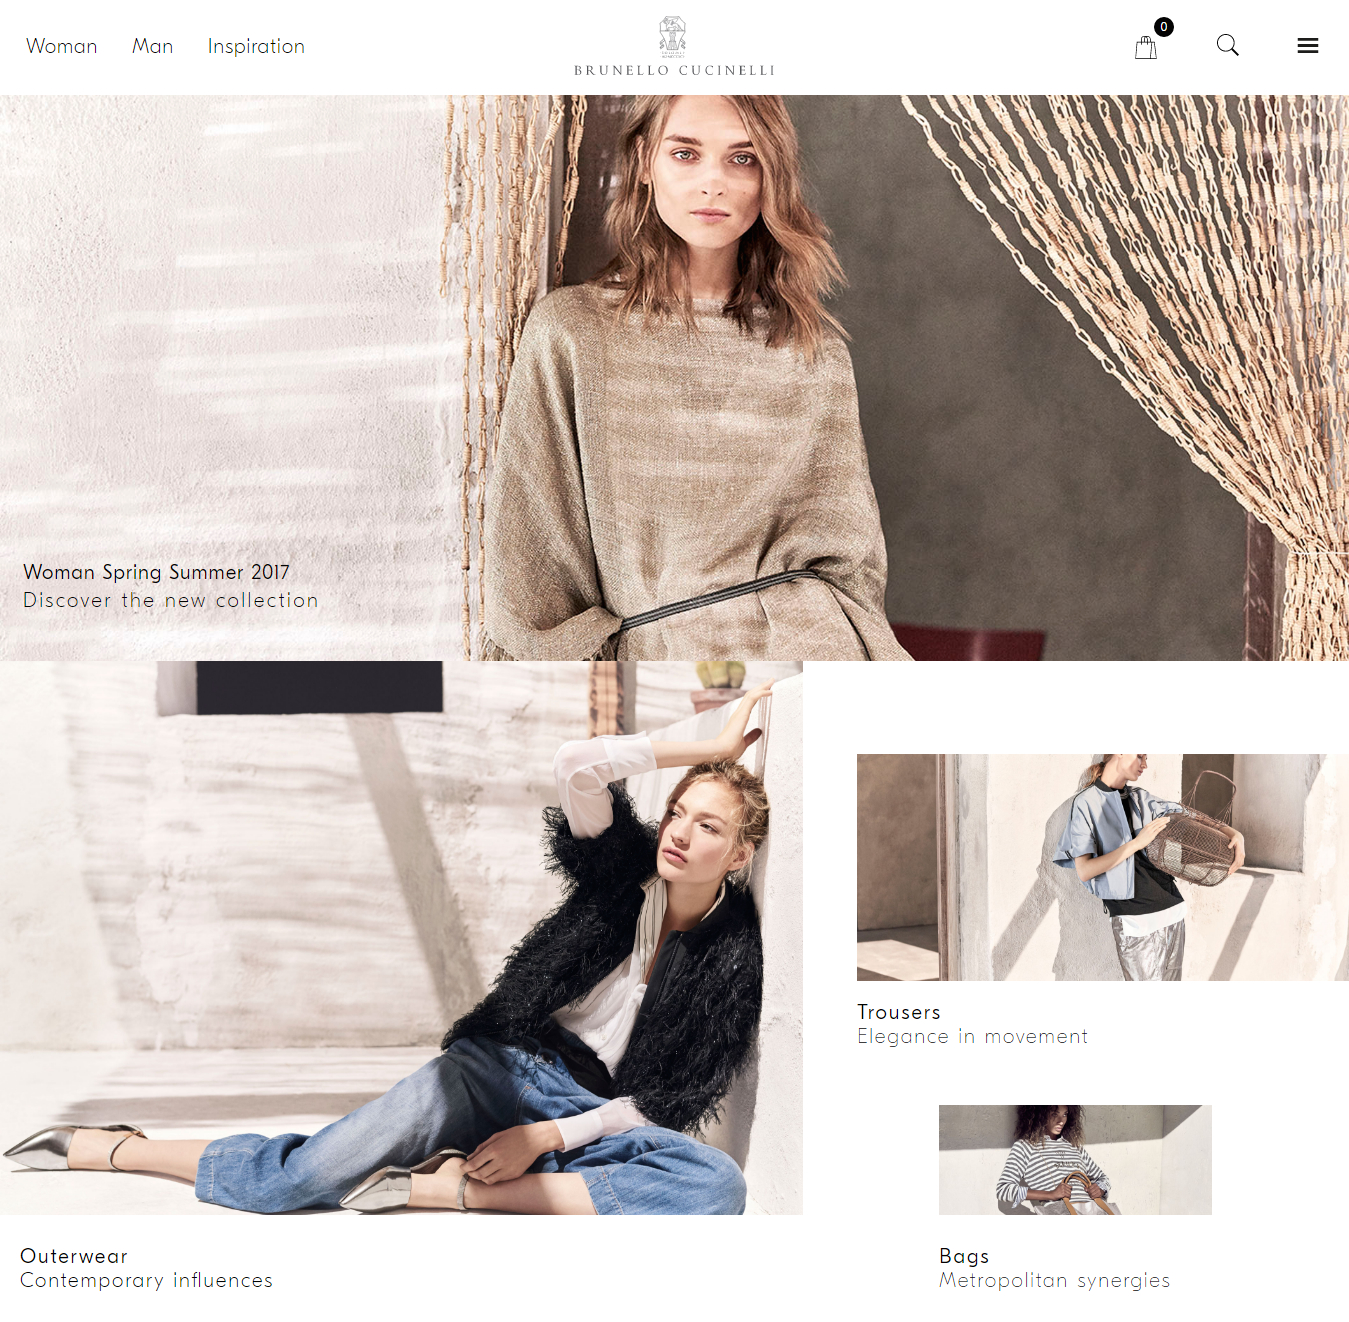 Brunello Cucinelli's e-commerce.